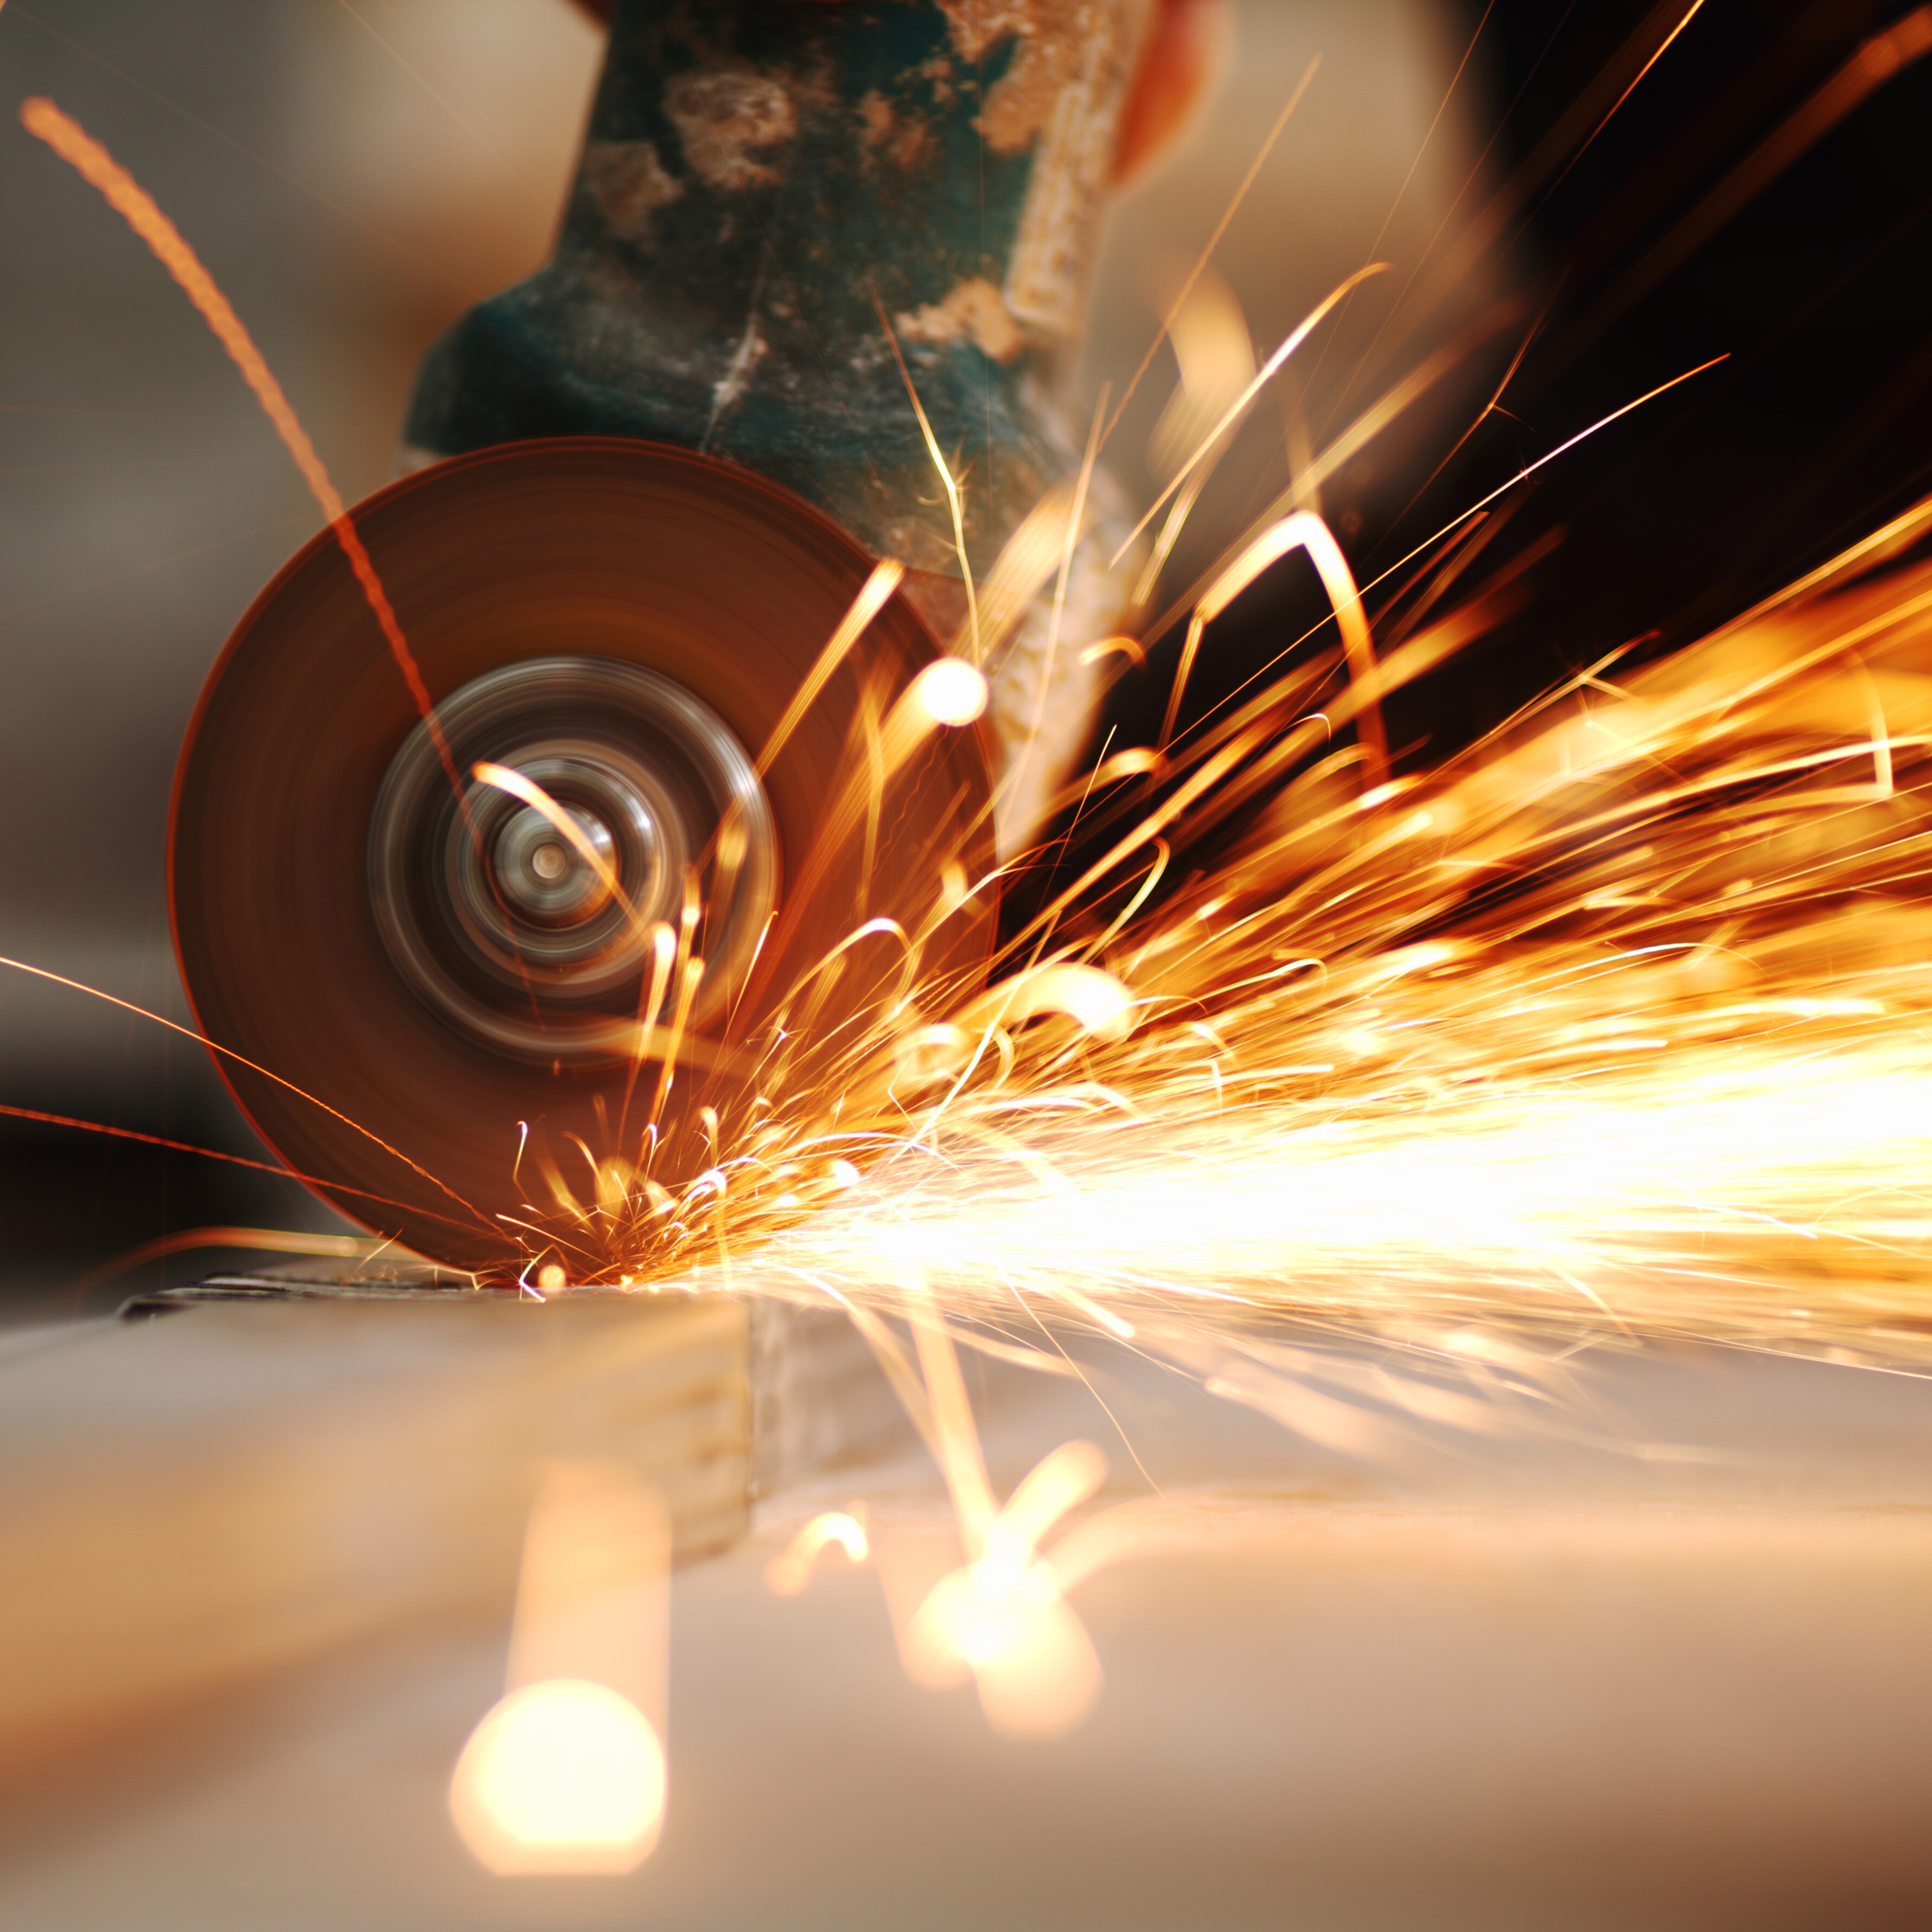 A wide variety of tools causes hand-arm vibration syndrome